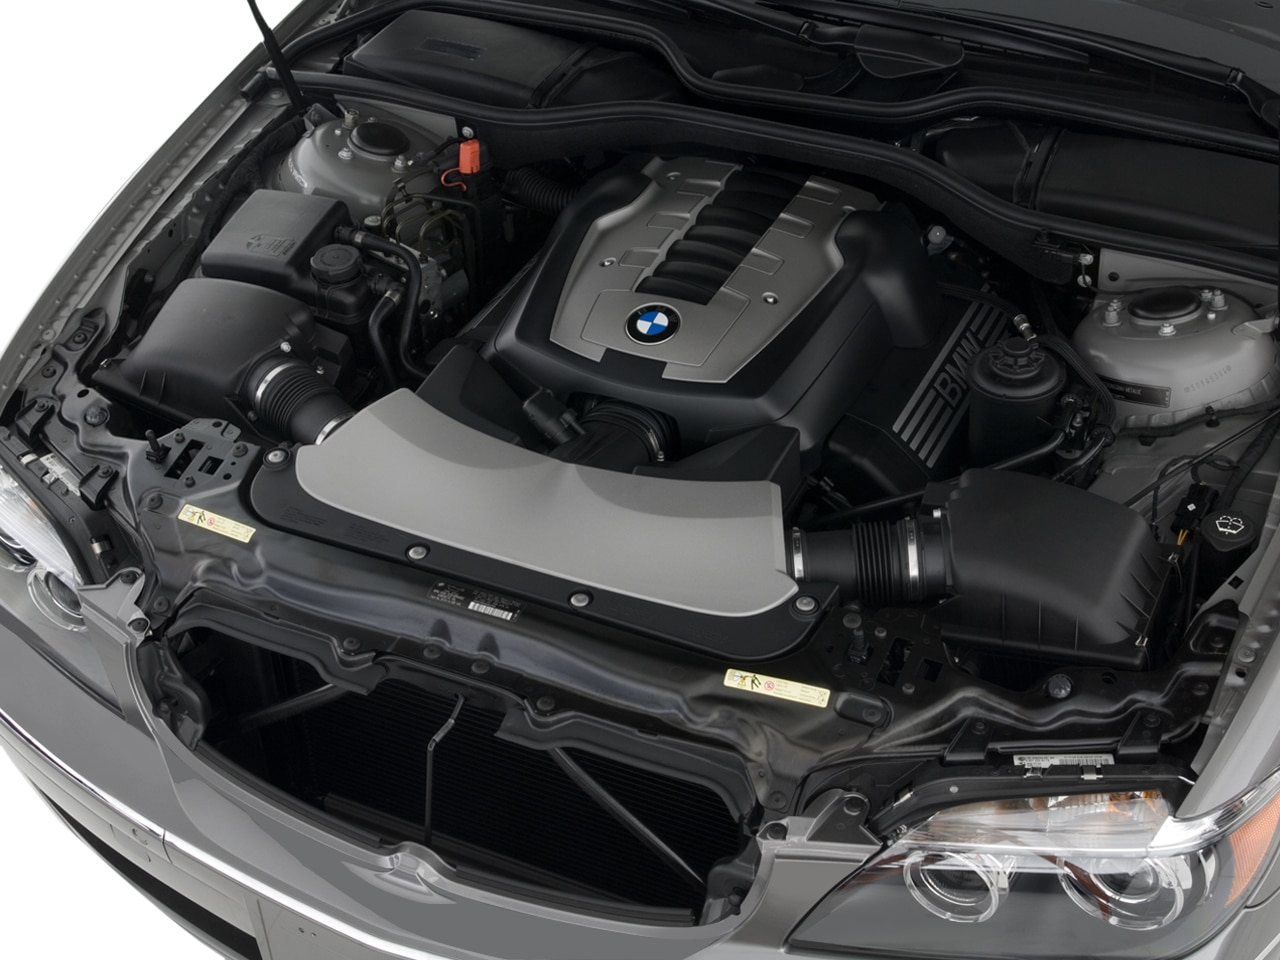 2014 bmw 328i engine diagram er for hospital management system 2008 7 series reviews and rating motor trend